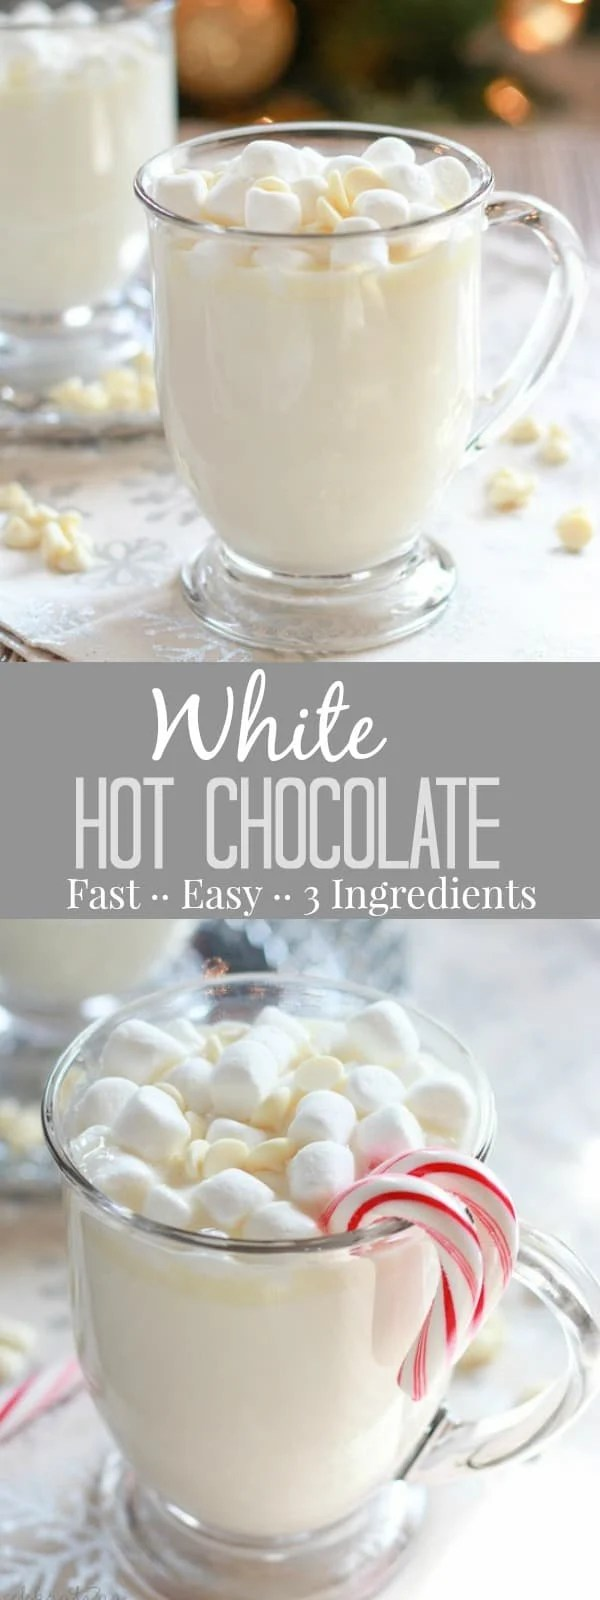 Making hot chocolate for a crowd - White Hot Chocolate A Simple Recipe For Sweet And Creamy Homemade White Hot Chocolate That